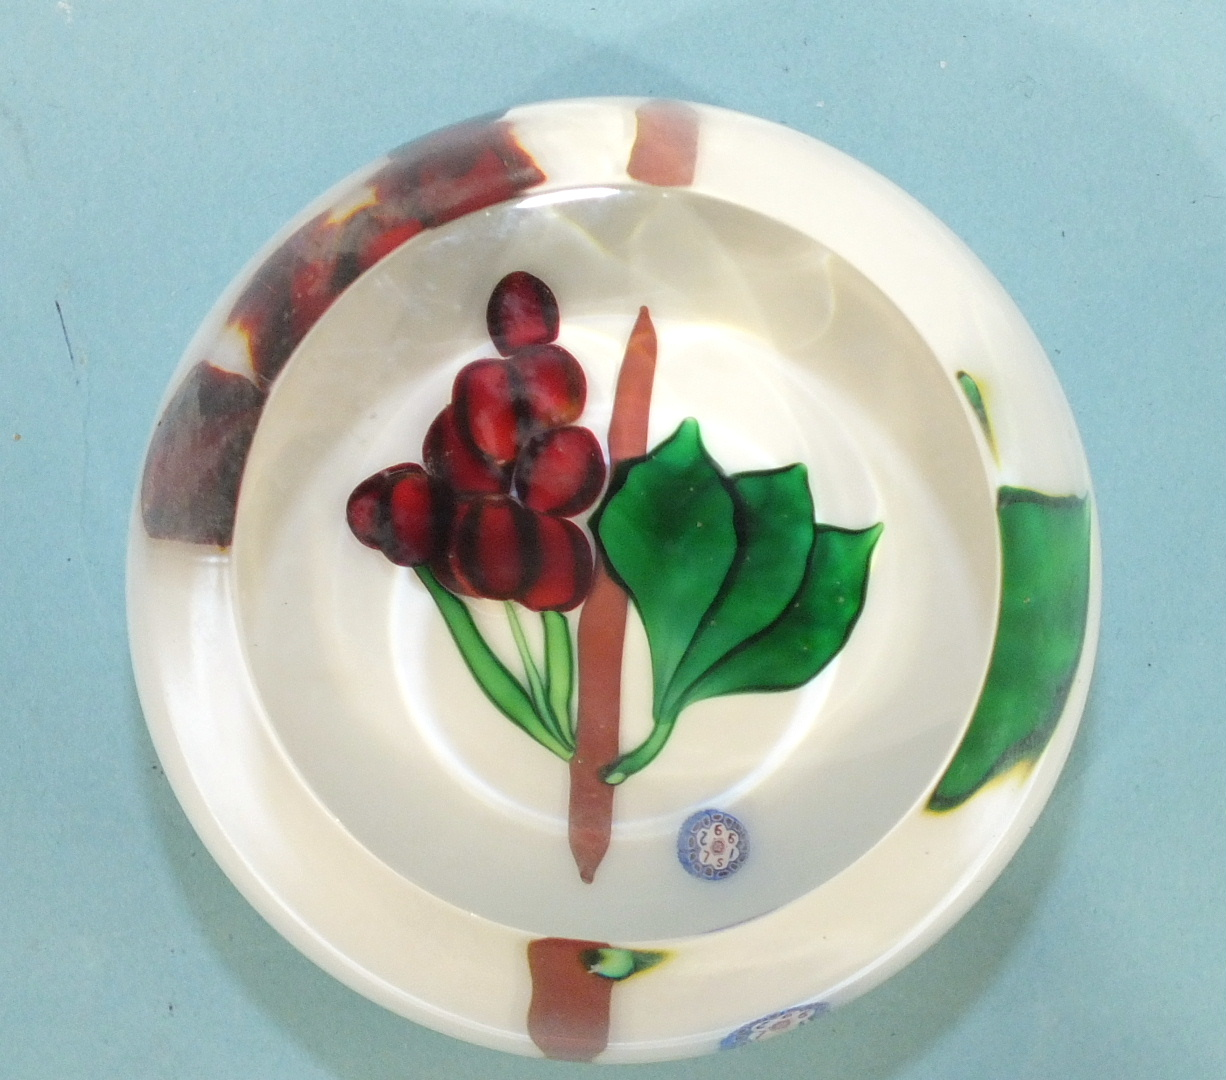 Lot 259 - A modern St Louis glass paperweight decorated with berries and leaves, 7cm diameter, 4cm high, dated